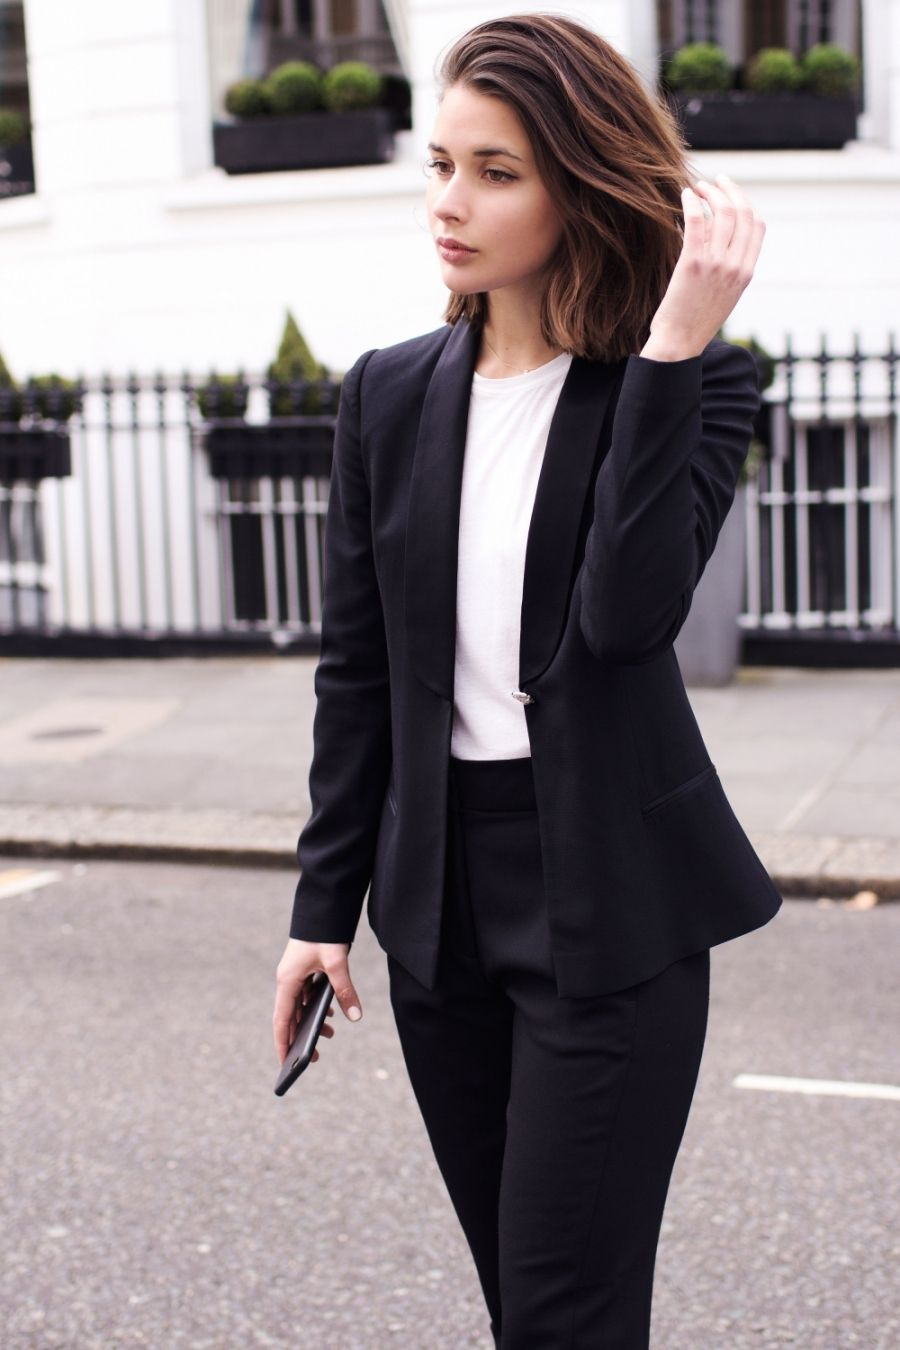 Ideas outfits for women - How To Wear A Suit Outfit Street Style Ideas Harper And Harley